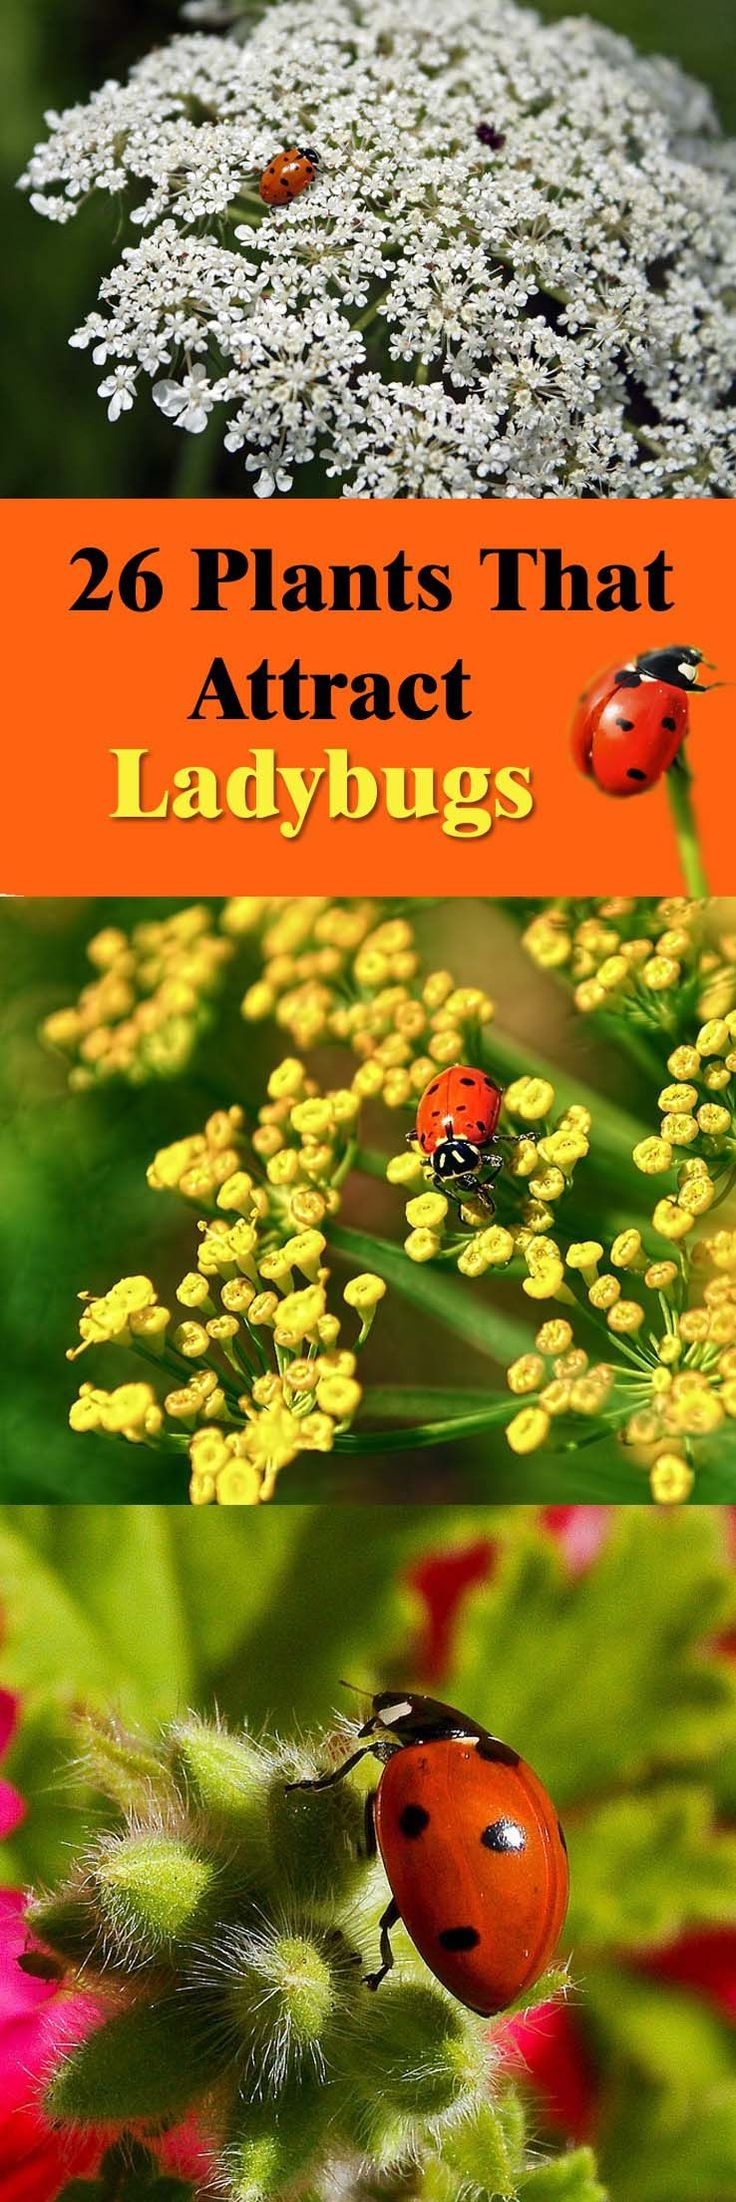 Ladybugs are one of the most beneficial insects that much that you should invite them in your garden to repel pests away. Click to find out Plants That Attract LADYBUGS.